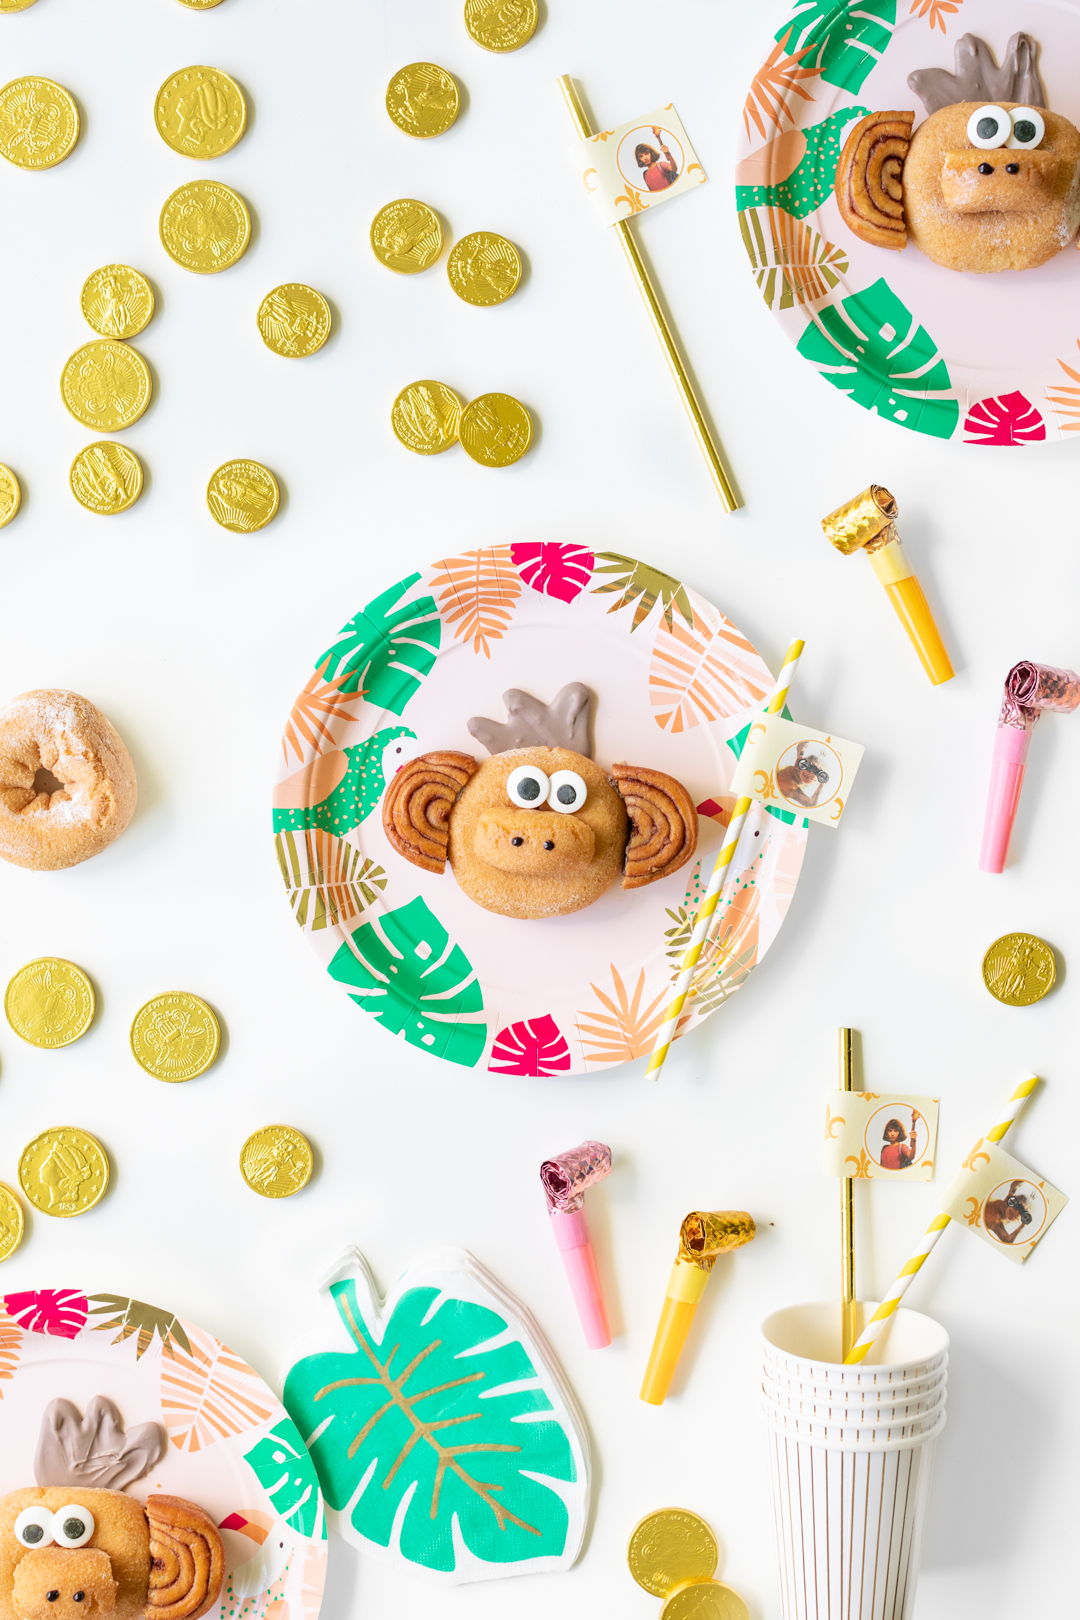 Cute Monkey Donut Creation in a jungle tropical party setting